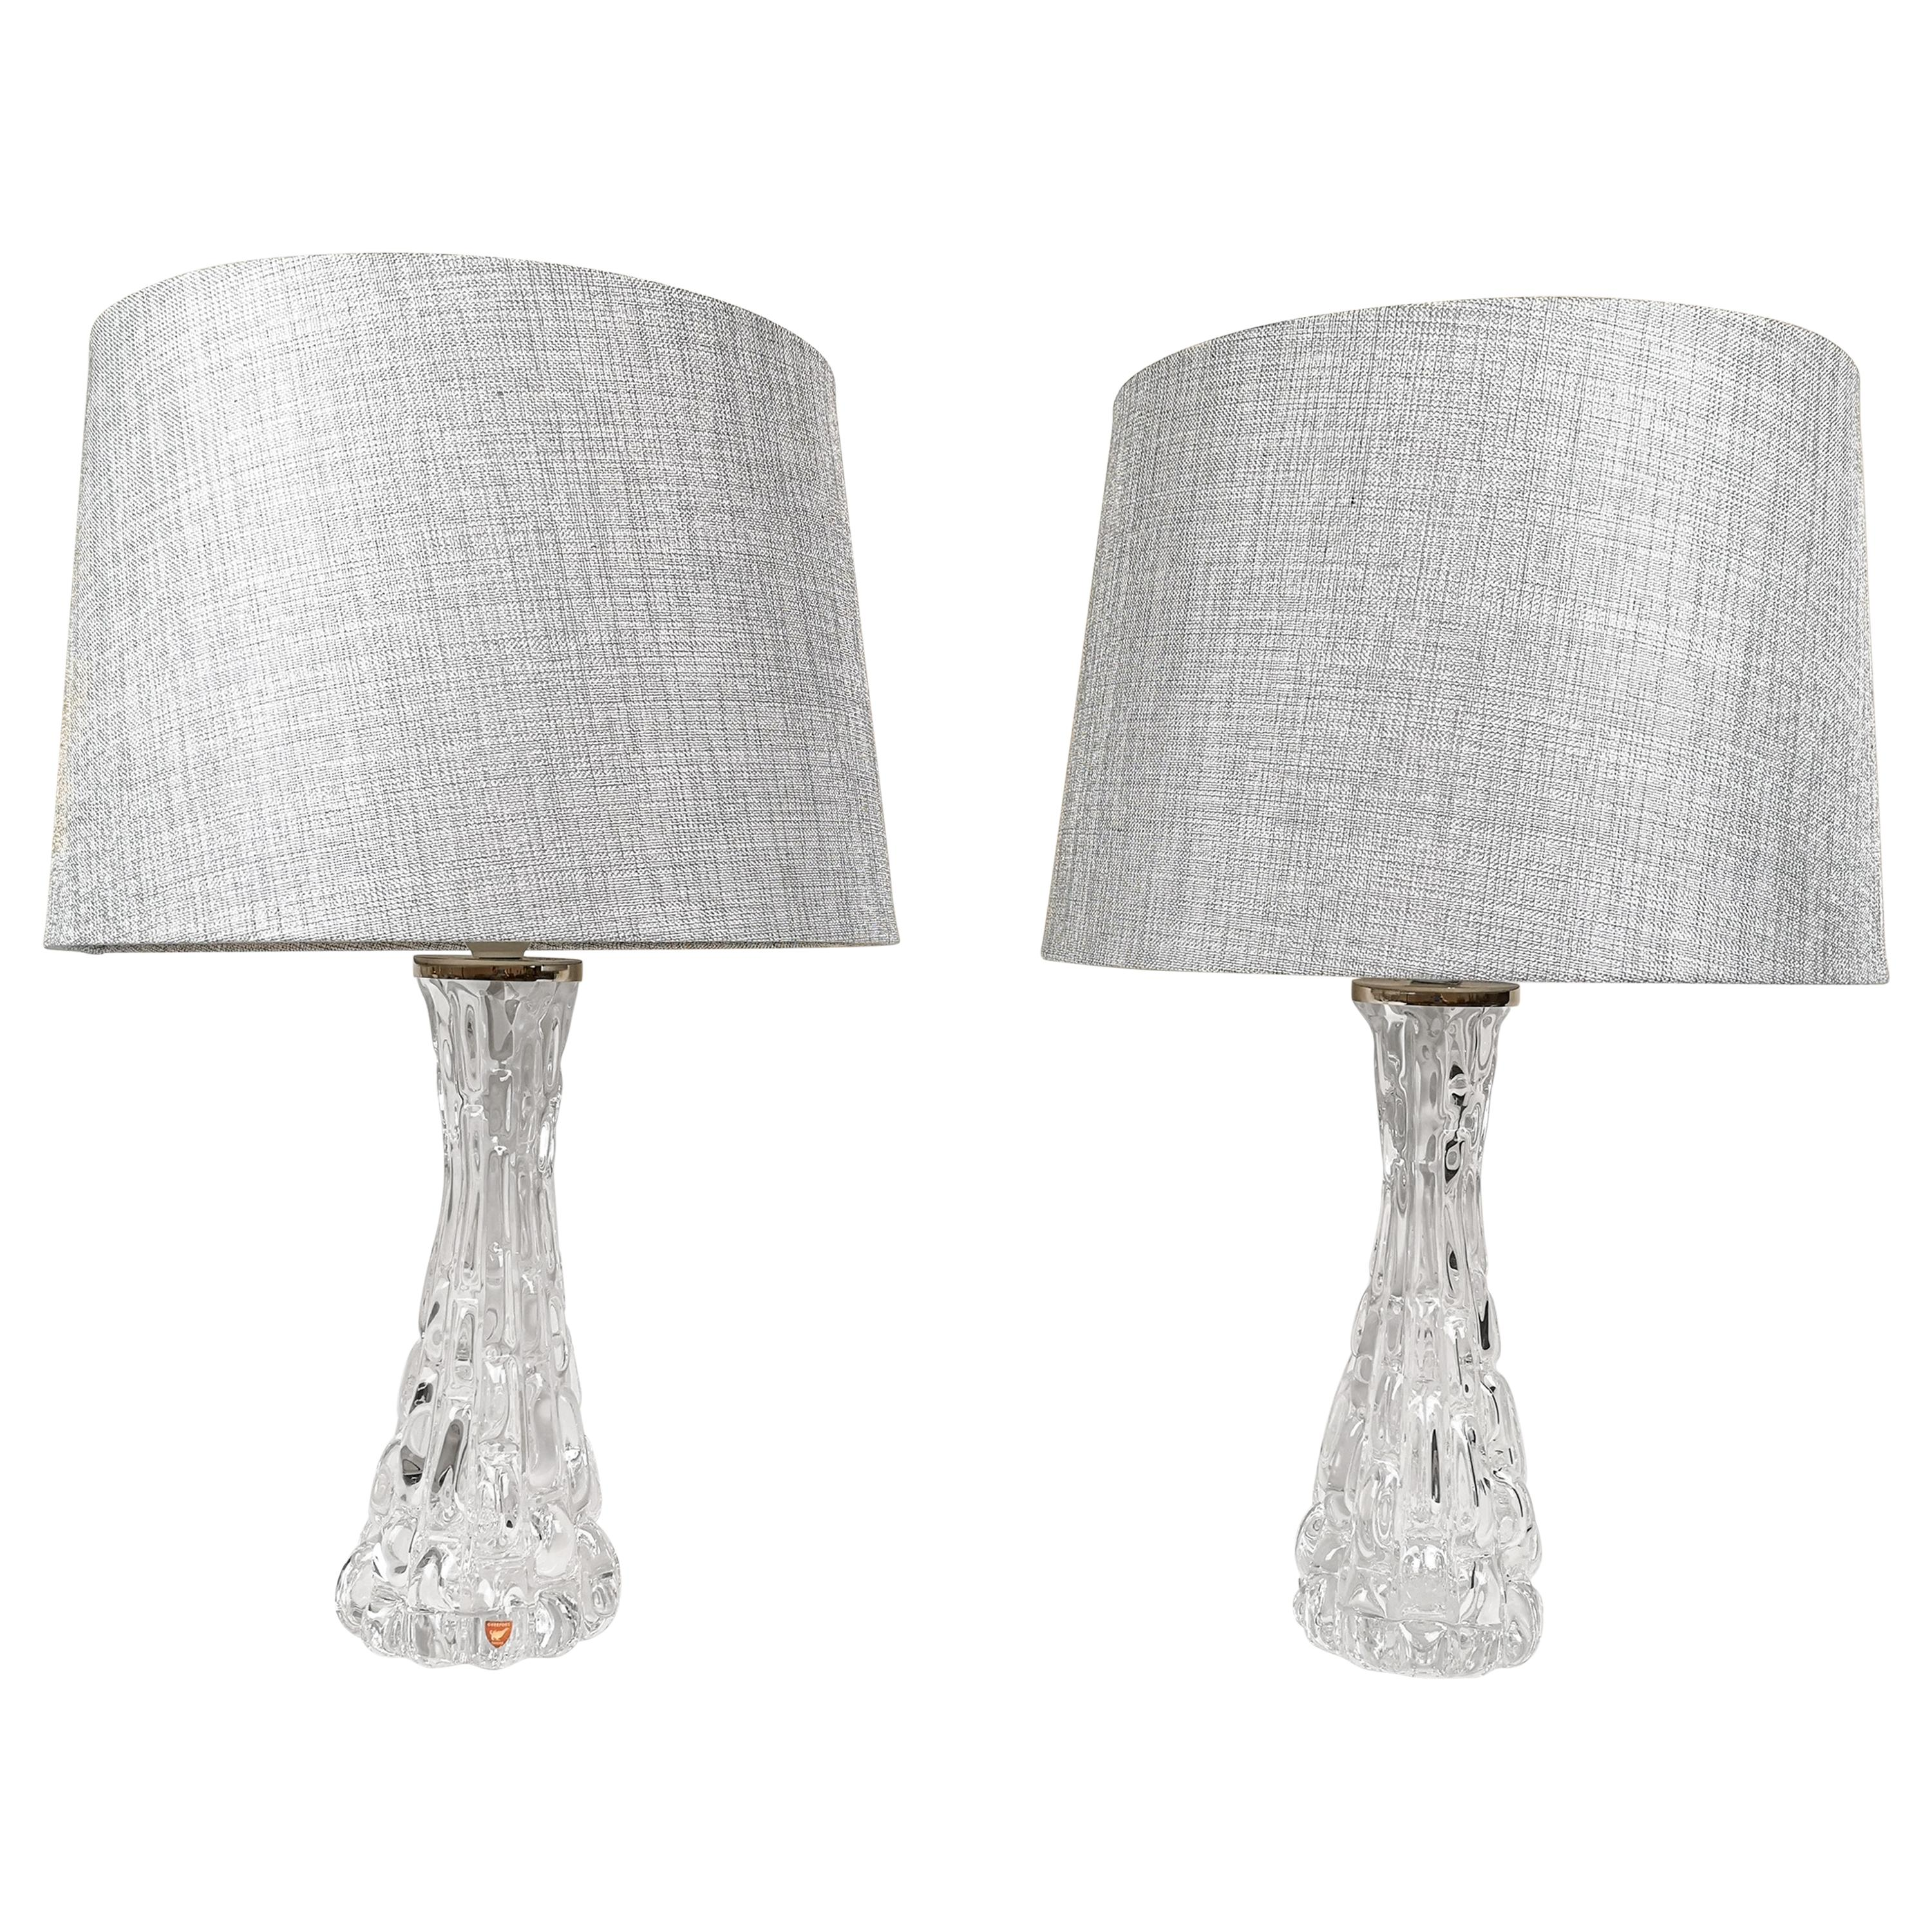 Swedish Midcentury Crystal Table Lamps Orrefors by Carl Fagerlund